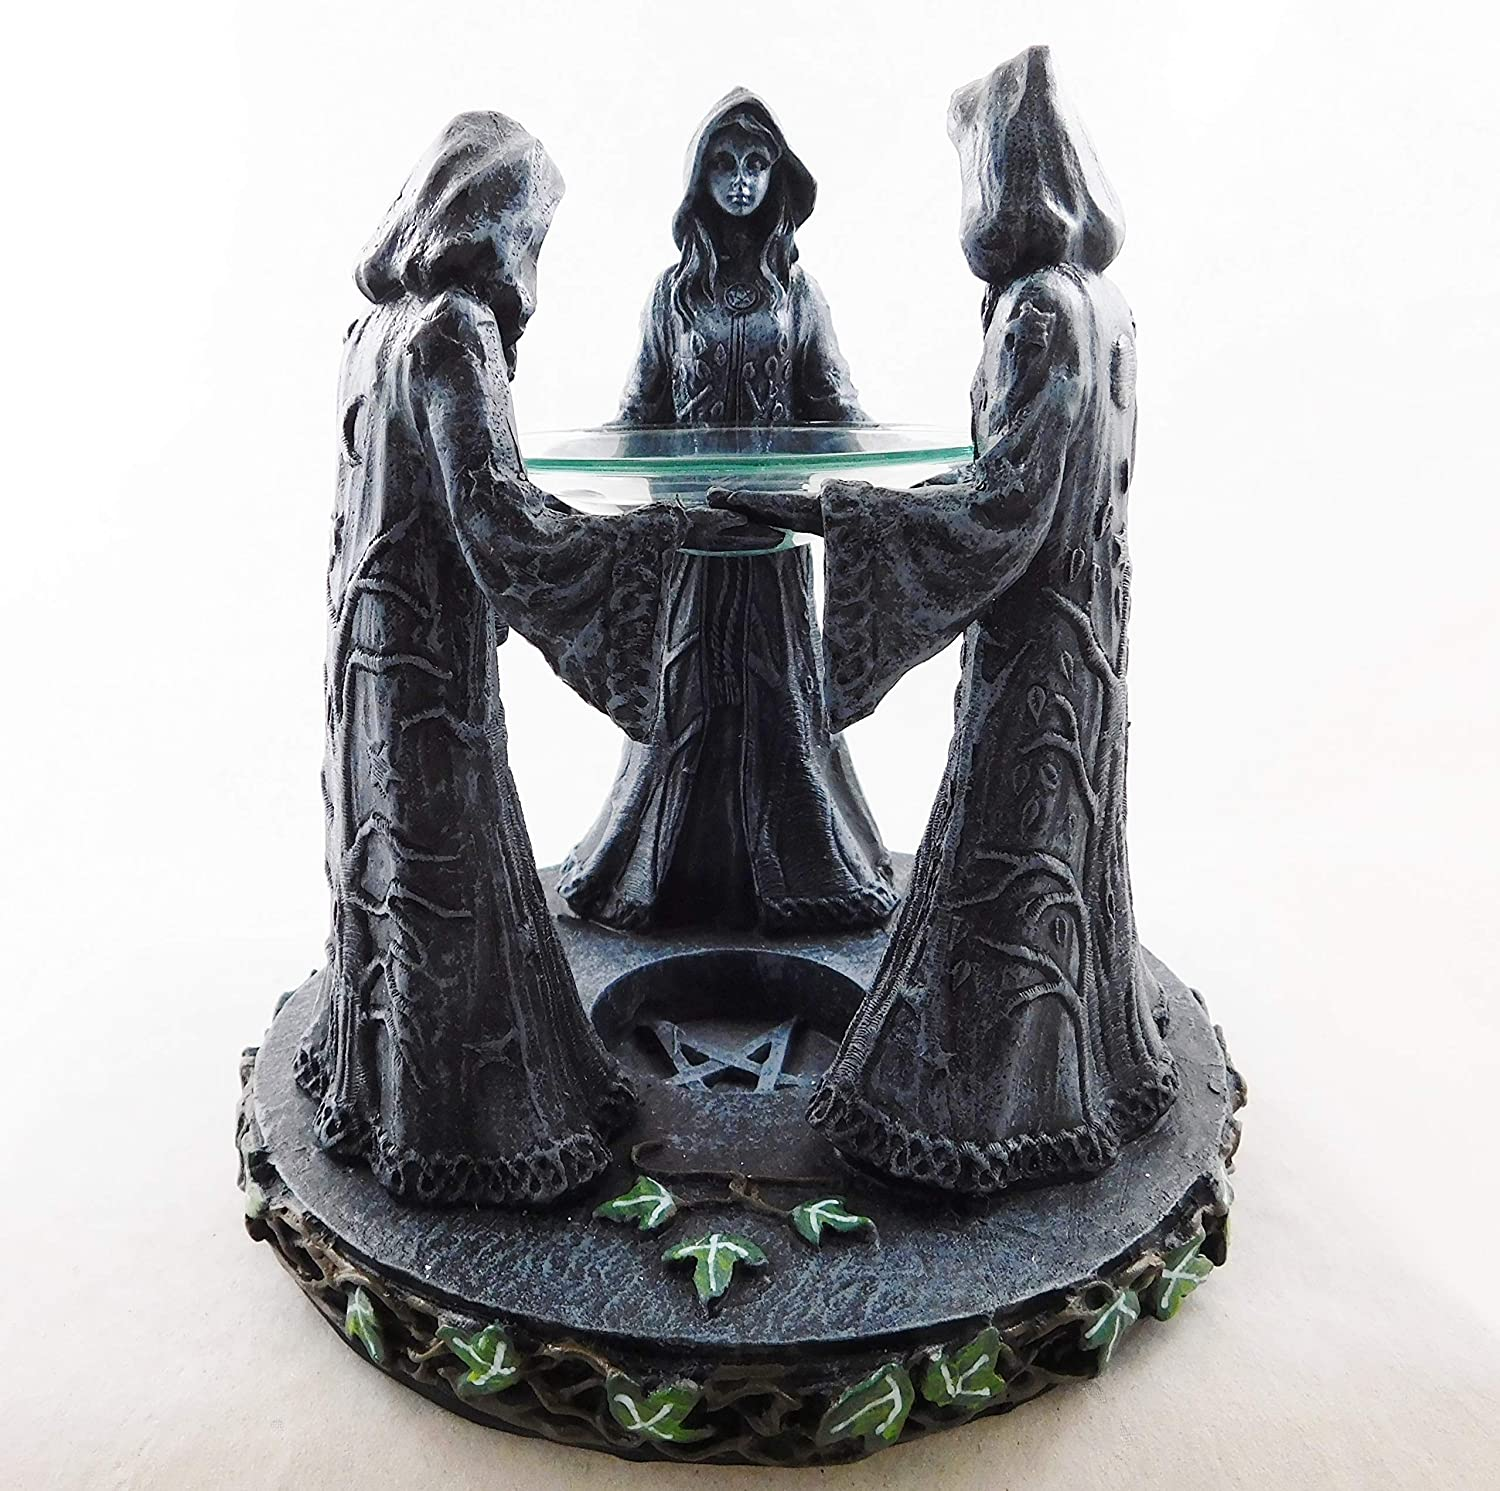 Pagan Wiccan Figures | Maiden Mother Crone Incense Oil Burner Witchcraft Circle Seven Secrets